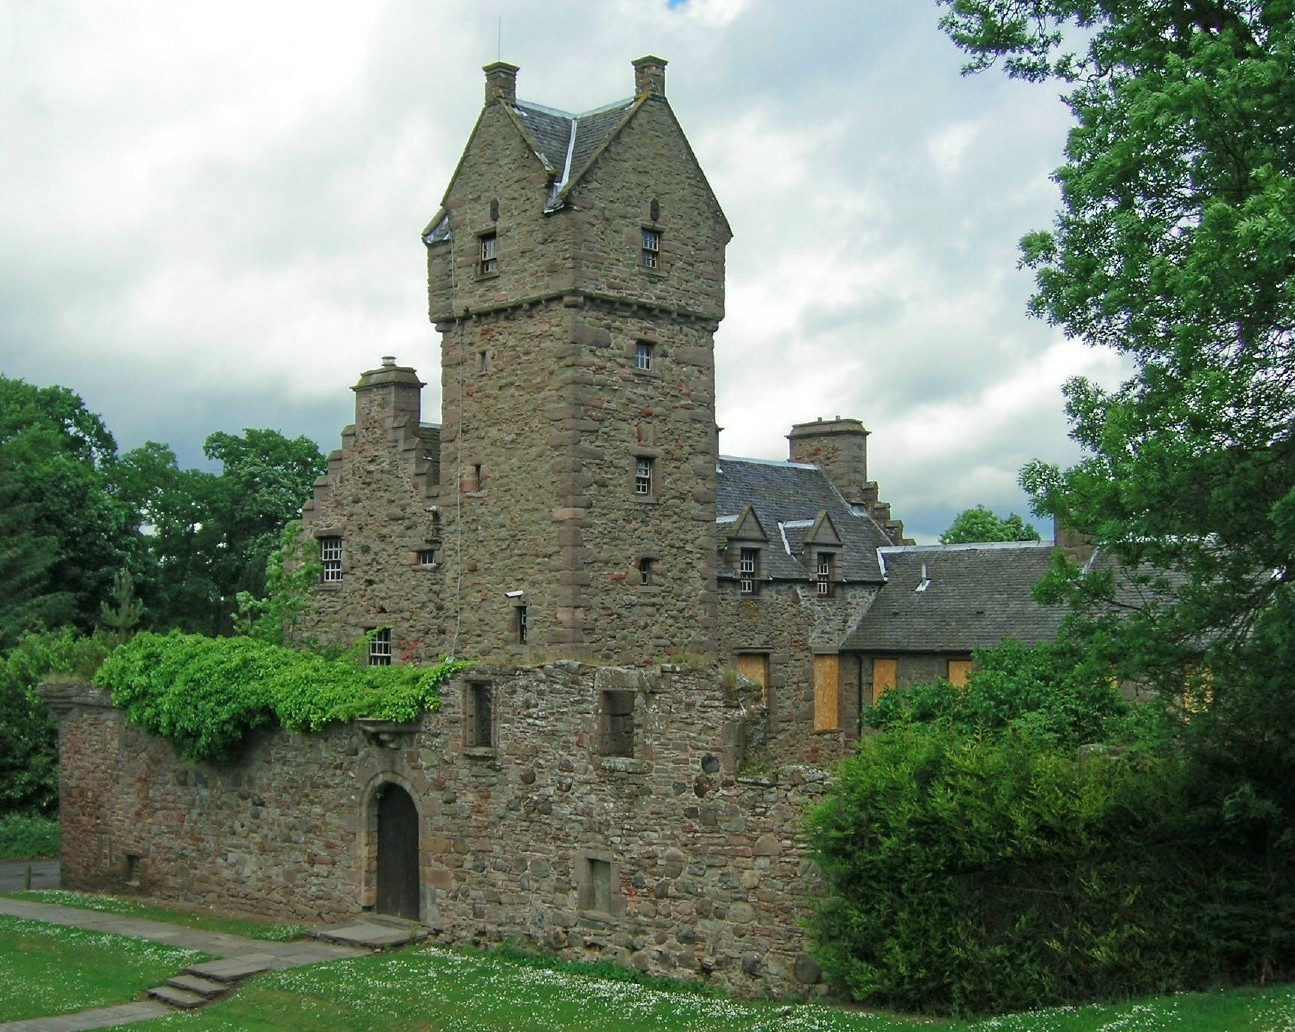 Mains Castle By Ydam - Own work, CC BY-SA 3.0, https://commons.wikimedia.org/w/index.php?curid=881101